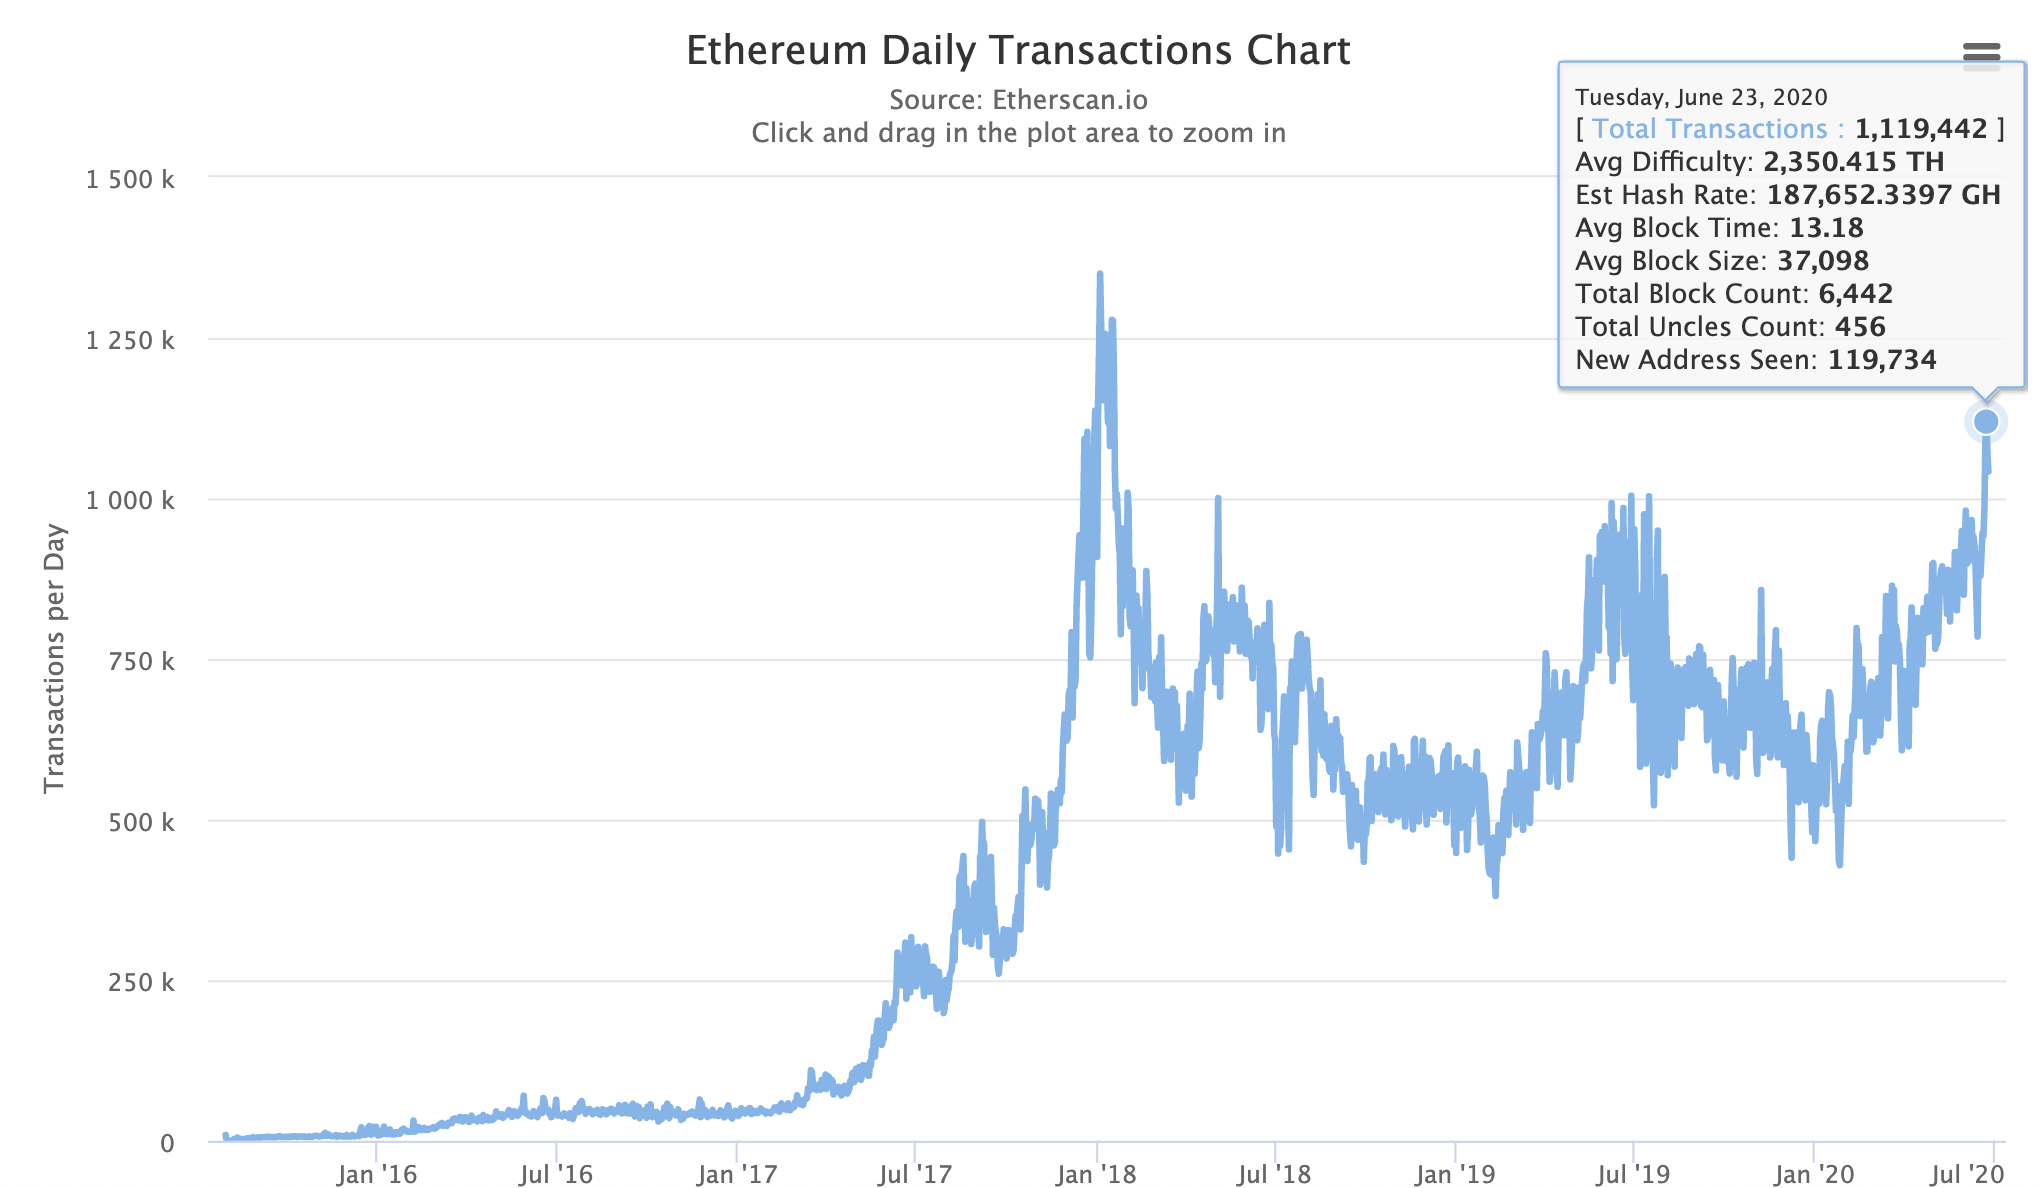 Ethereum transactions, June 2020